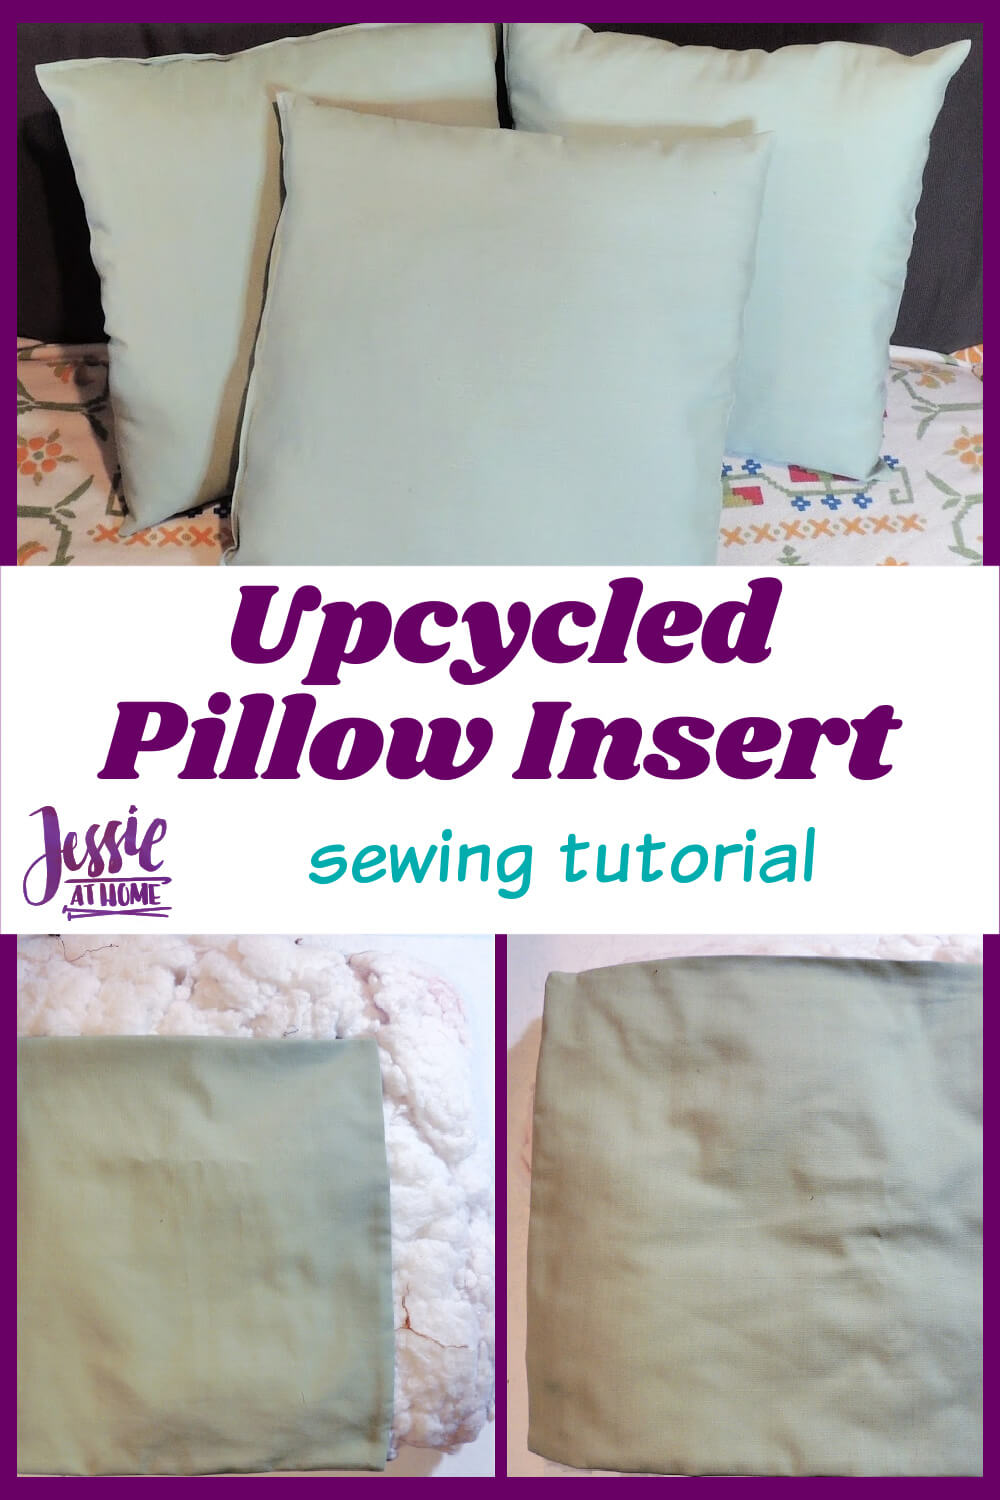 Upcycled Pillow Insert Made Out of an Old Throw Pillow